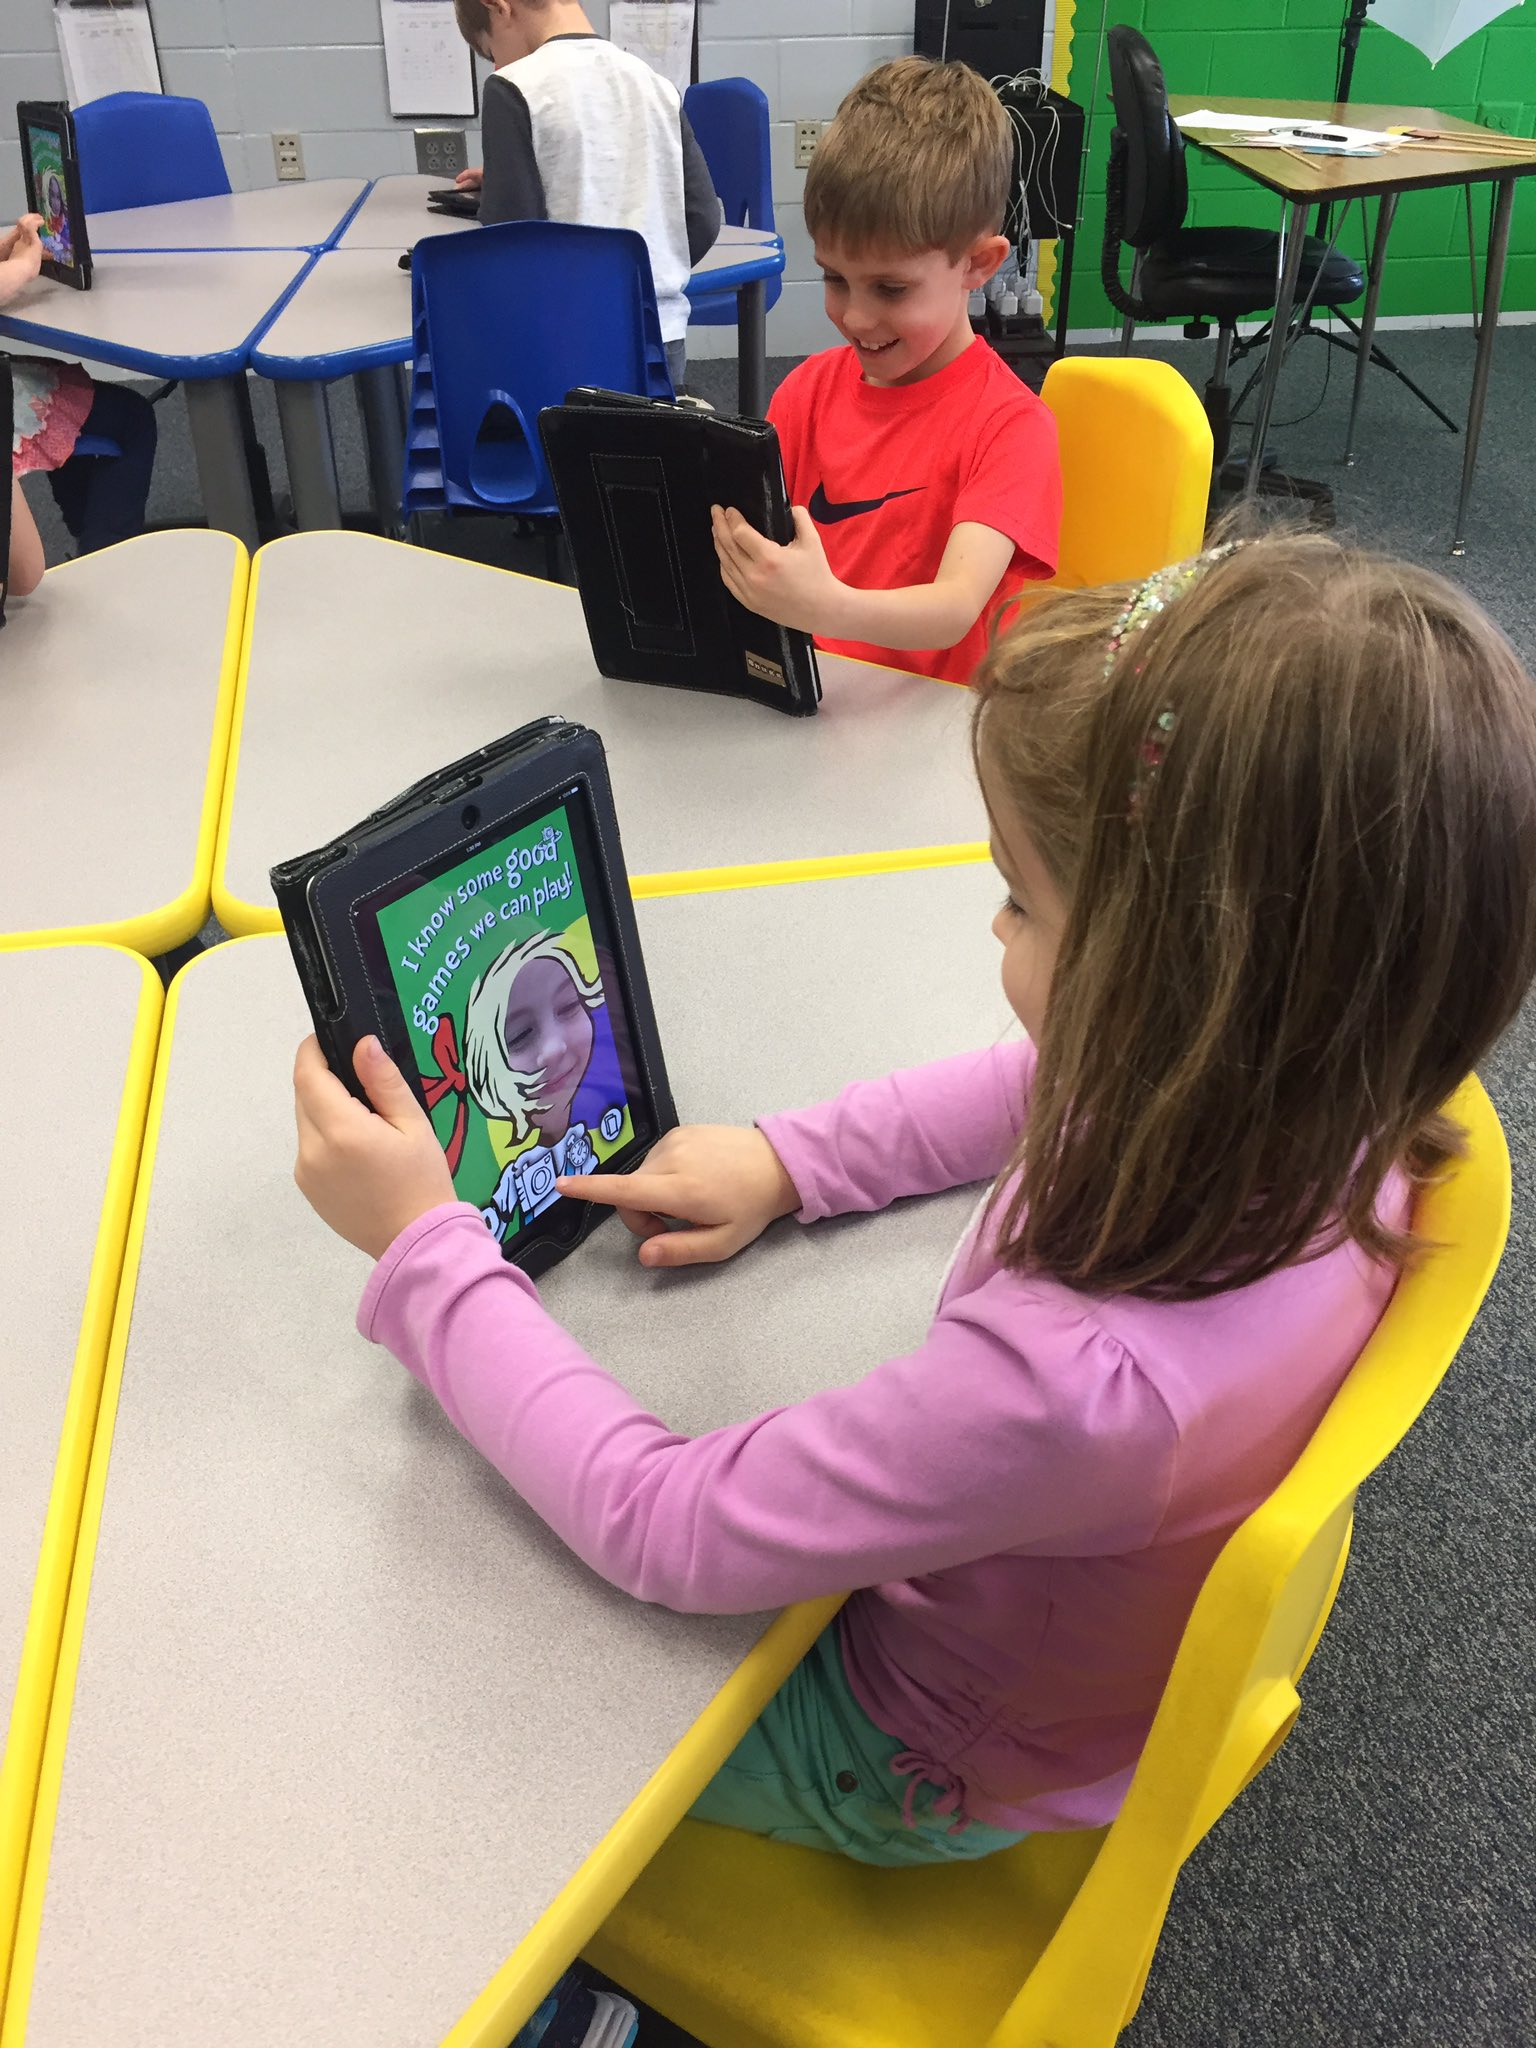 Celebrating #ReadAcrossAmerica week a little late with the Cat Cam Dr. Seuss app. App smashing with @ChatterPixIt for extra fun! https://t.co/NurEo1kGSC